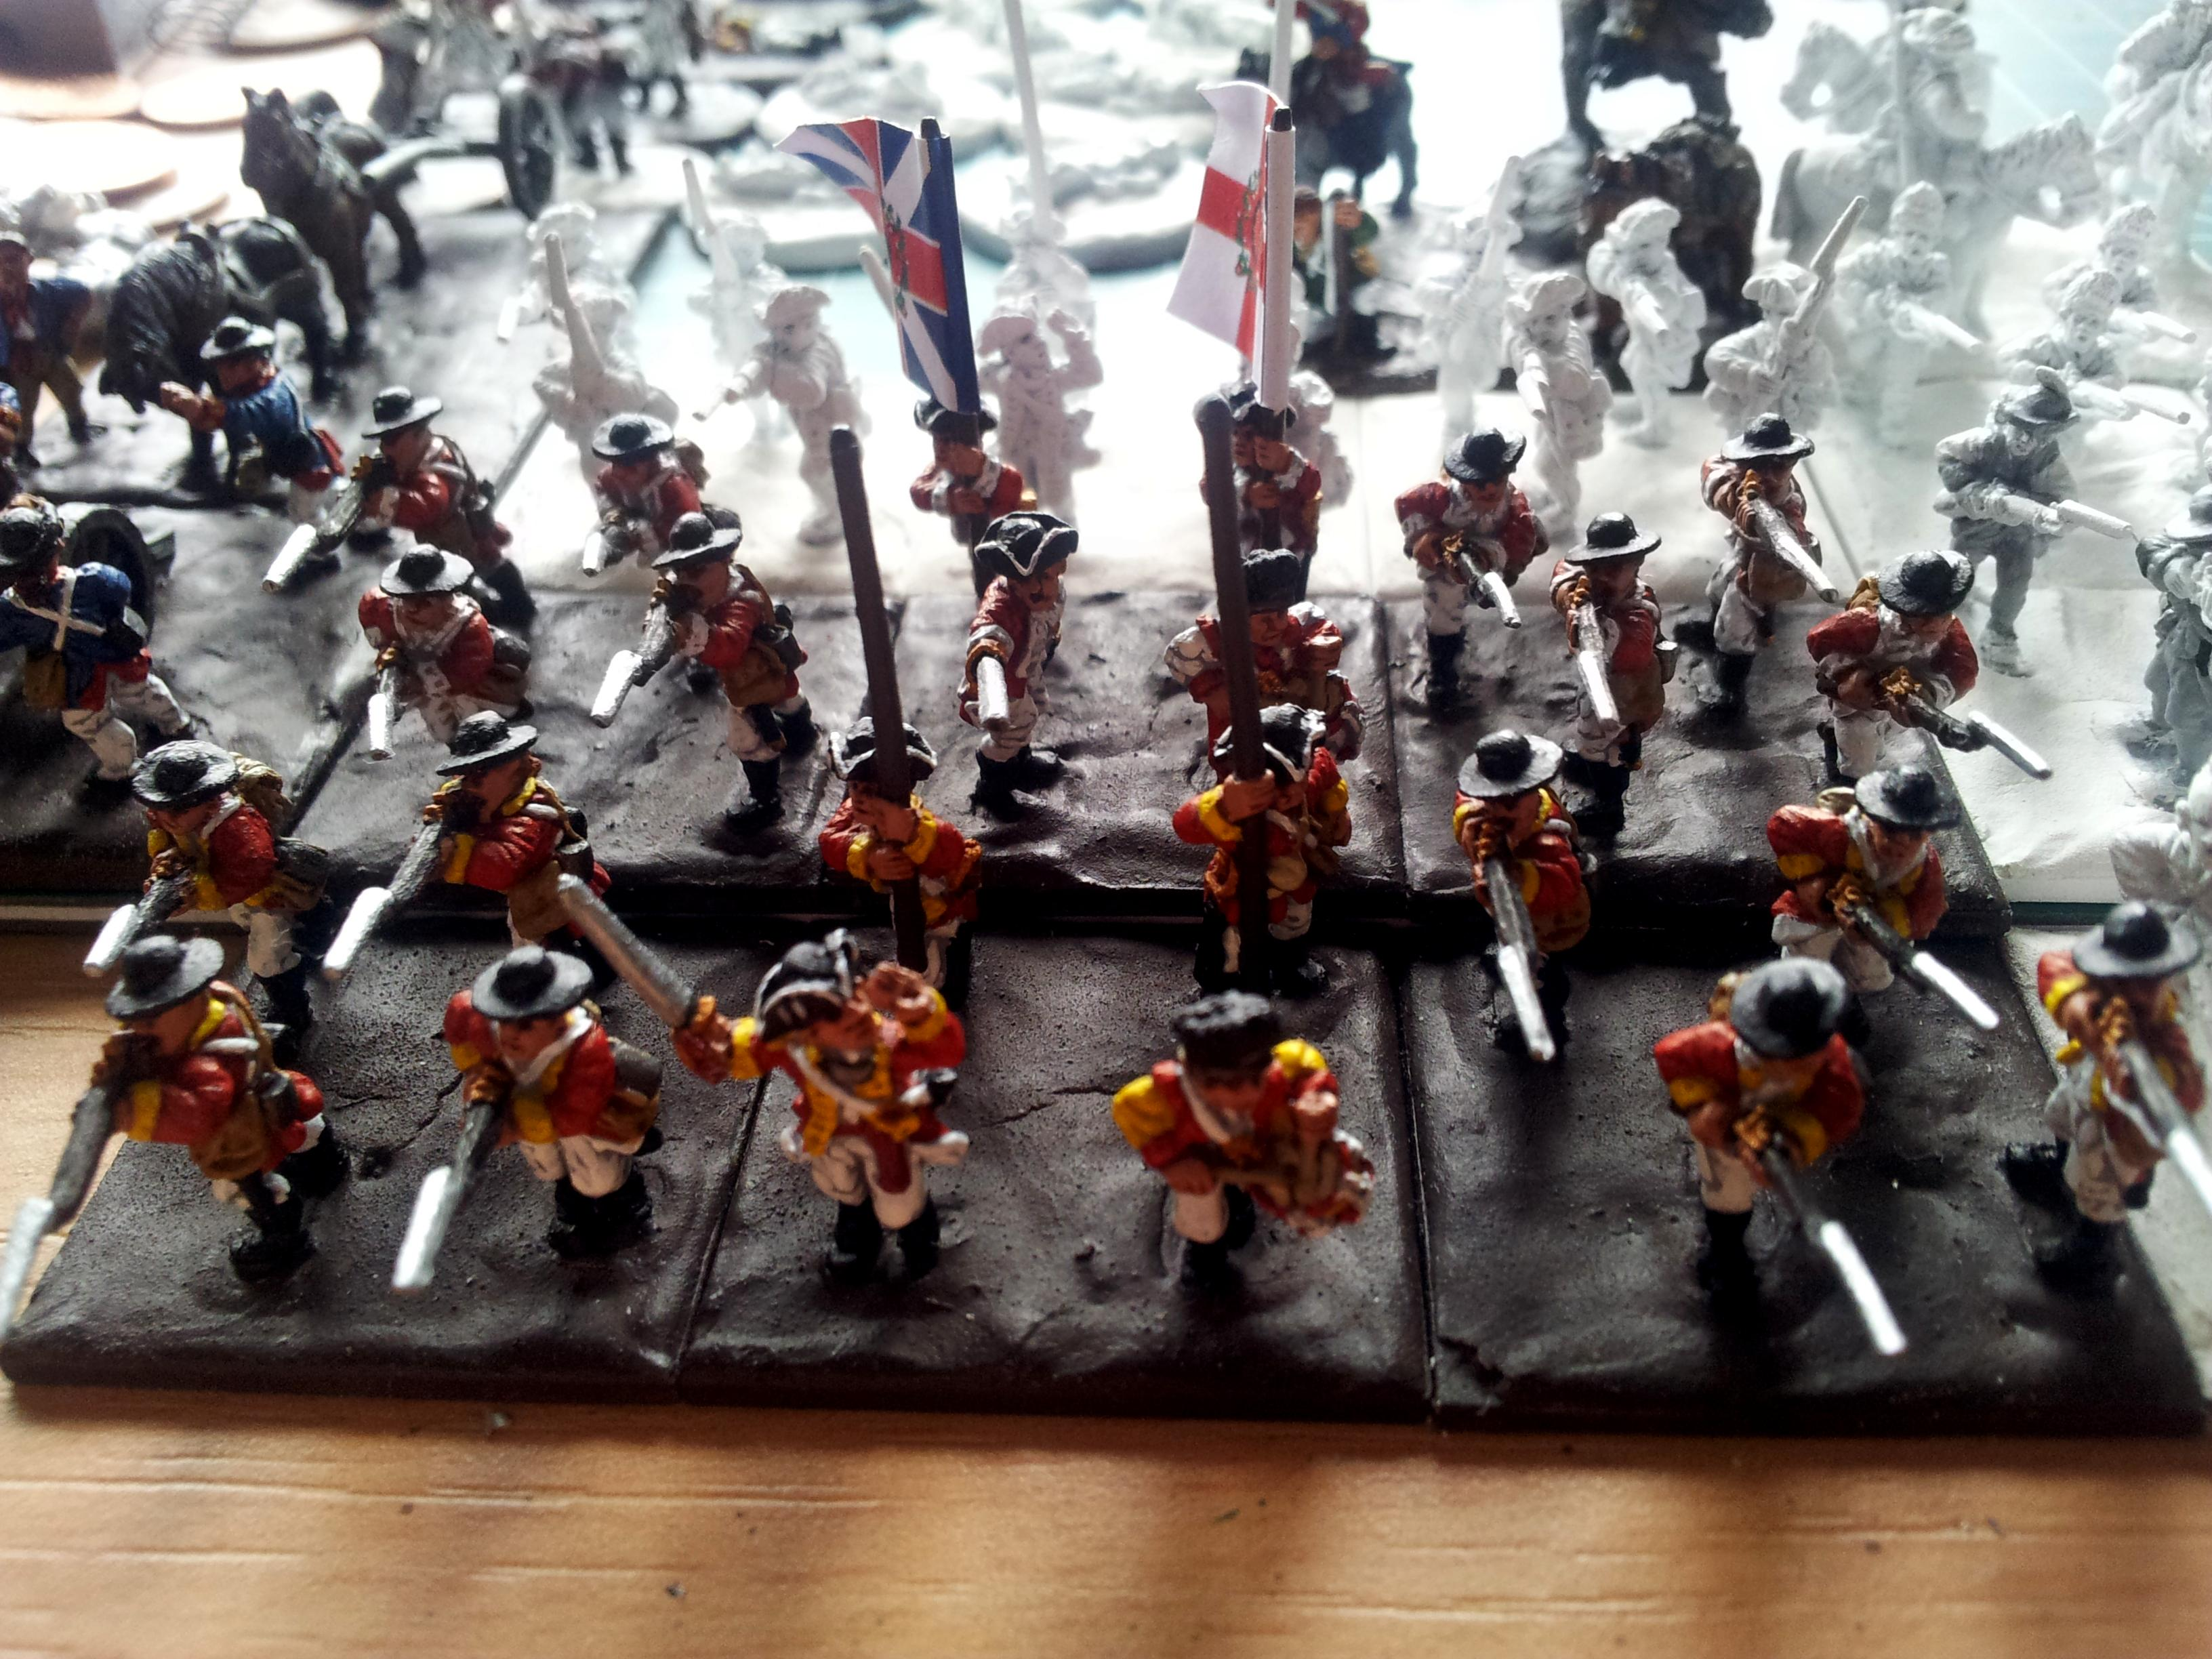 Awi, Historical, Redcoats, Work In Progress